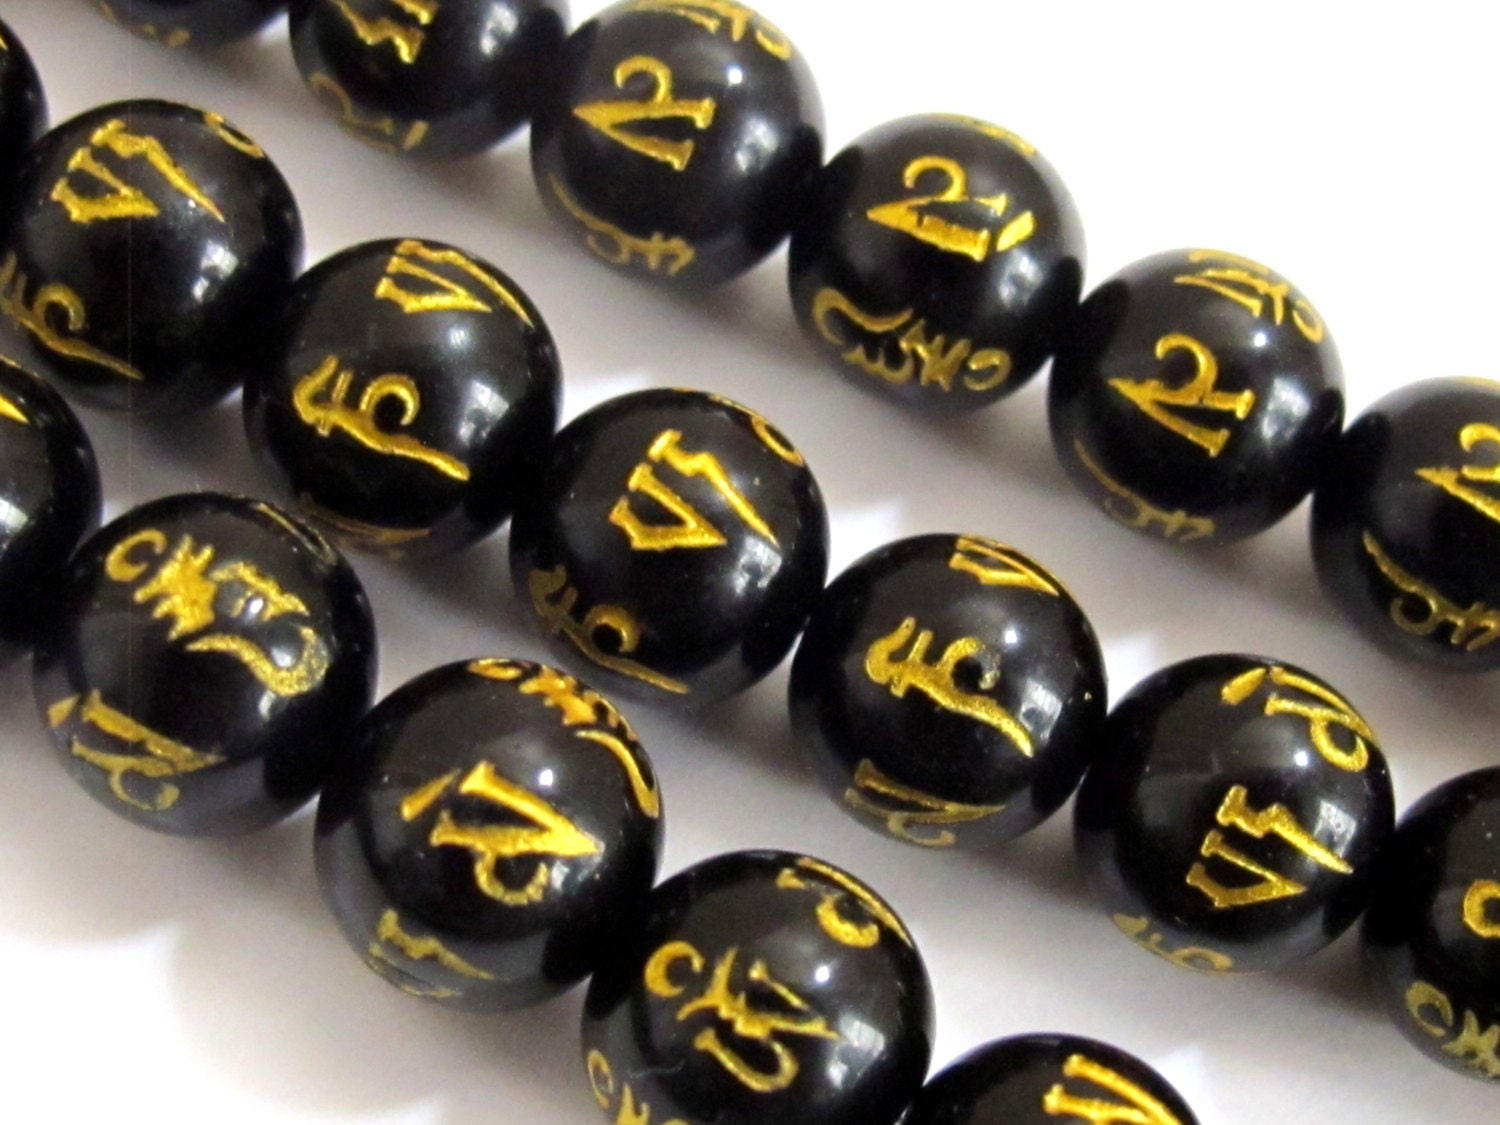 4 tibetan om mantra etched black agate quartz 10